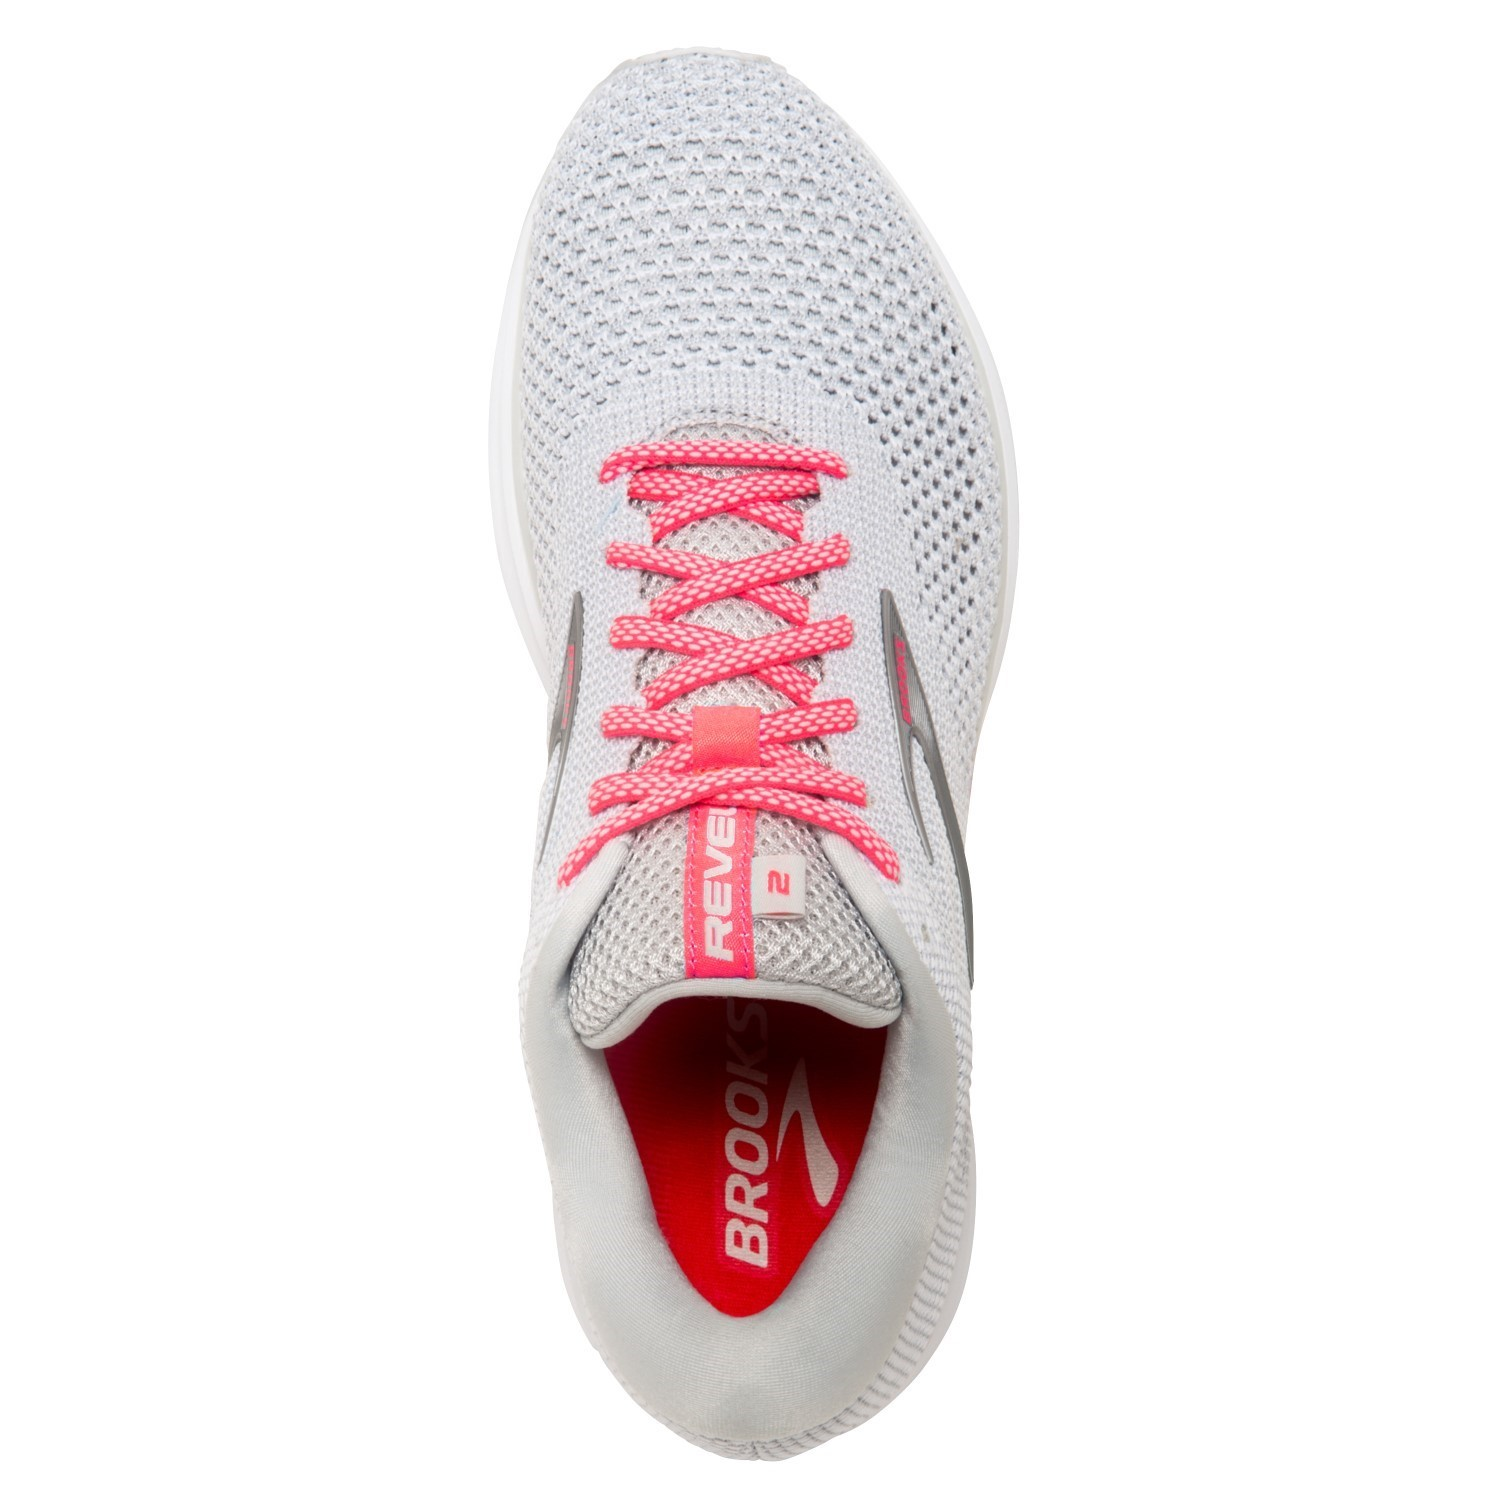 e4f483083af Brooks Revel 2 - Womens Running Shoes - Grey White Pink